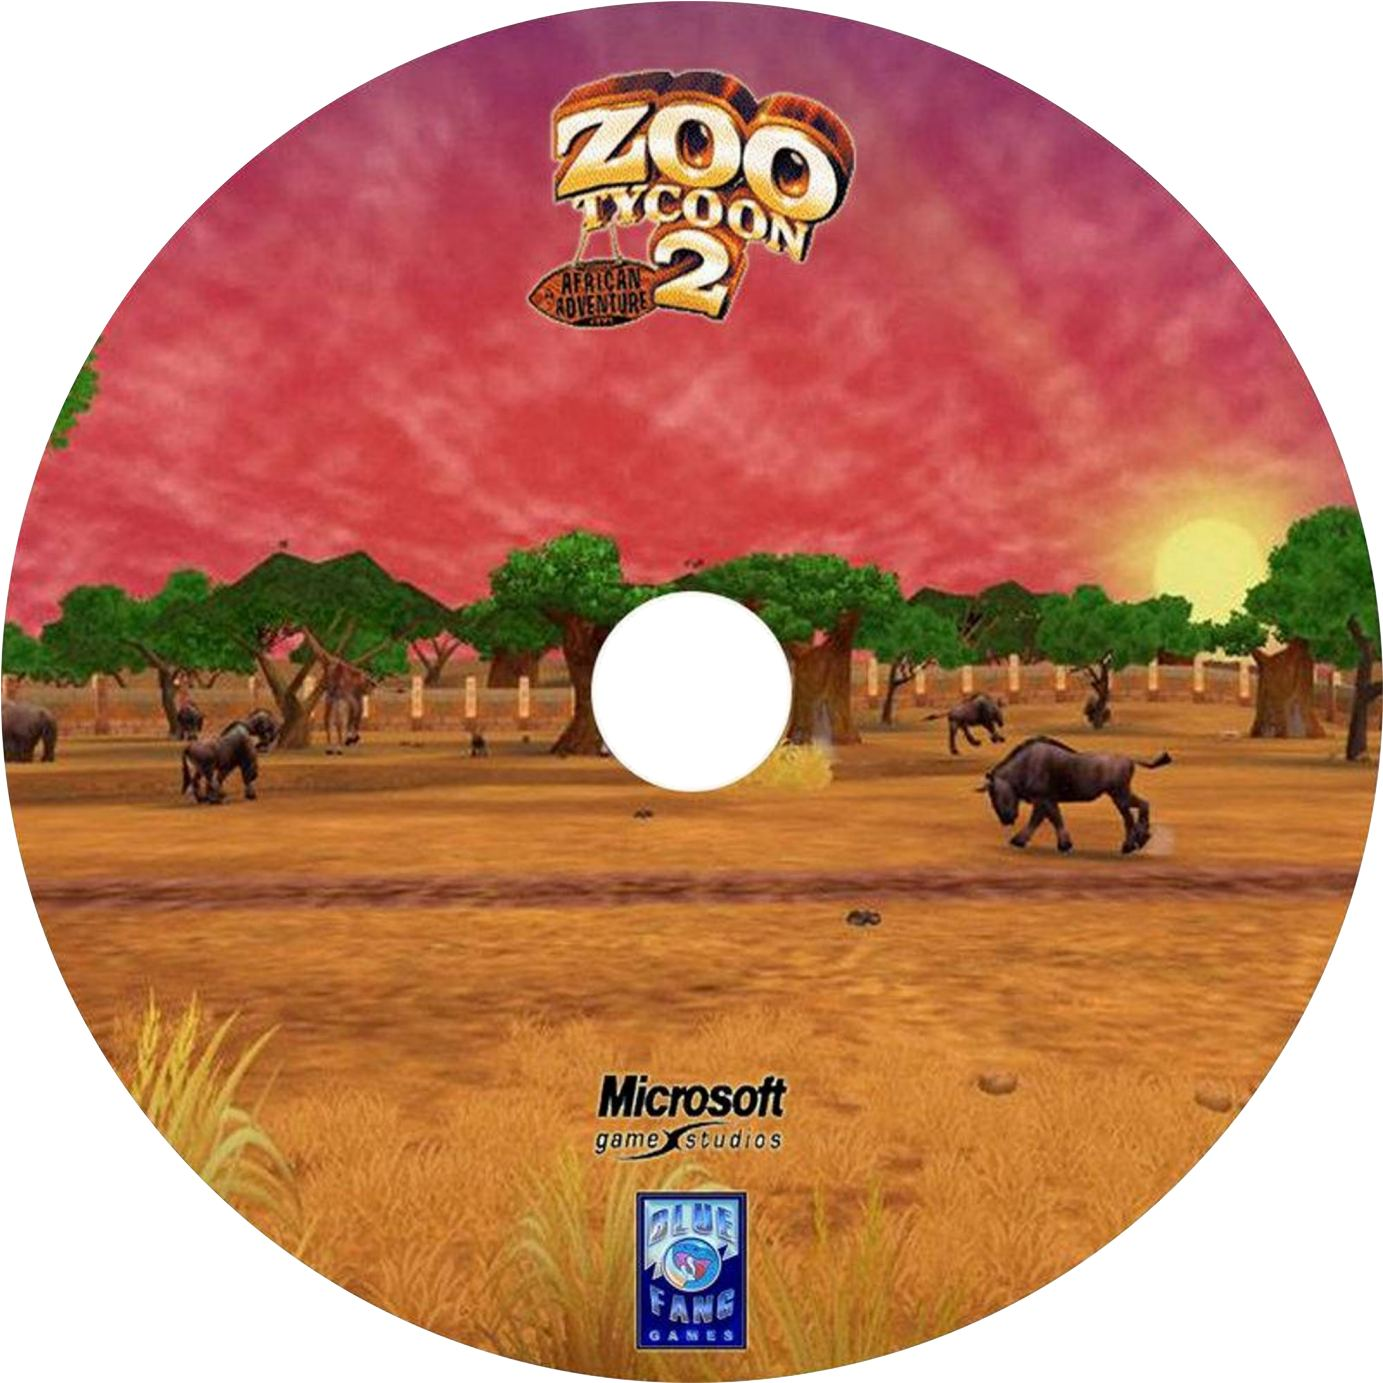 zoo tycoon 2 african adventure cd2 | PC Covers | Cover